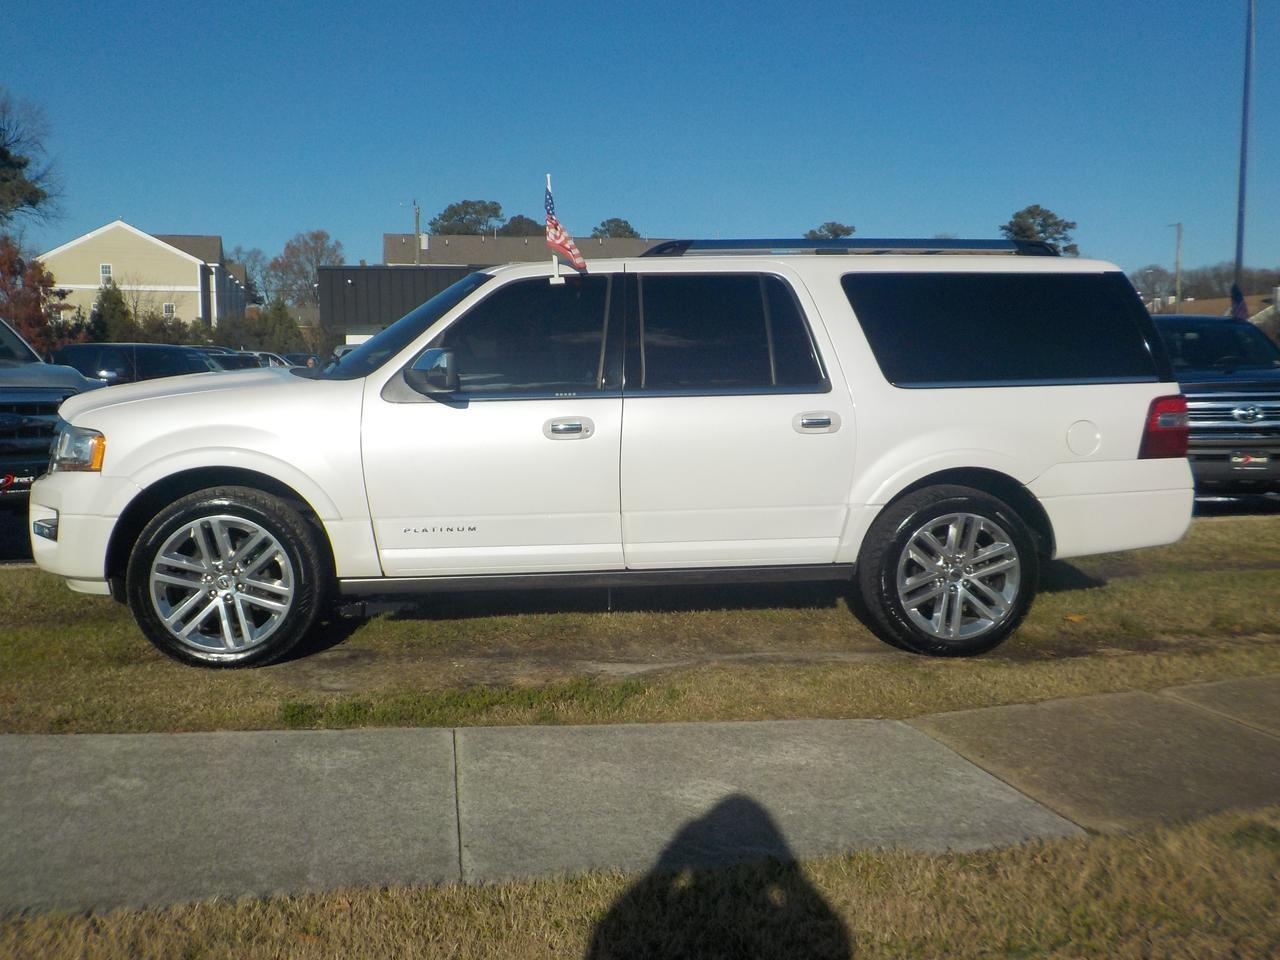 2017 FORD EXPEDITION EL PLATINUM 4X4, ONE OWNER, NAVIGATION, LEATHER, TOW PACKAGE, HEATED & COOLED SEATS, SUNROOF! Virginia Beach VA